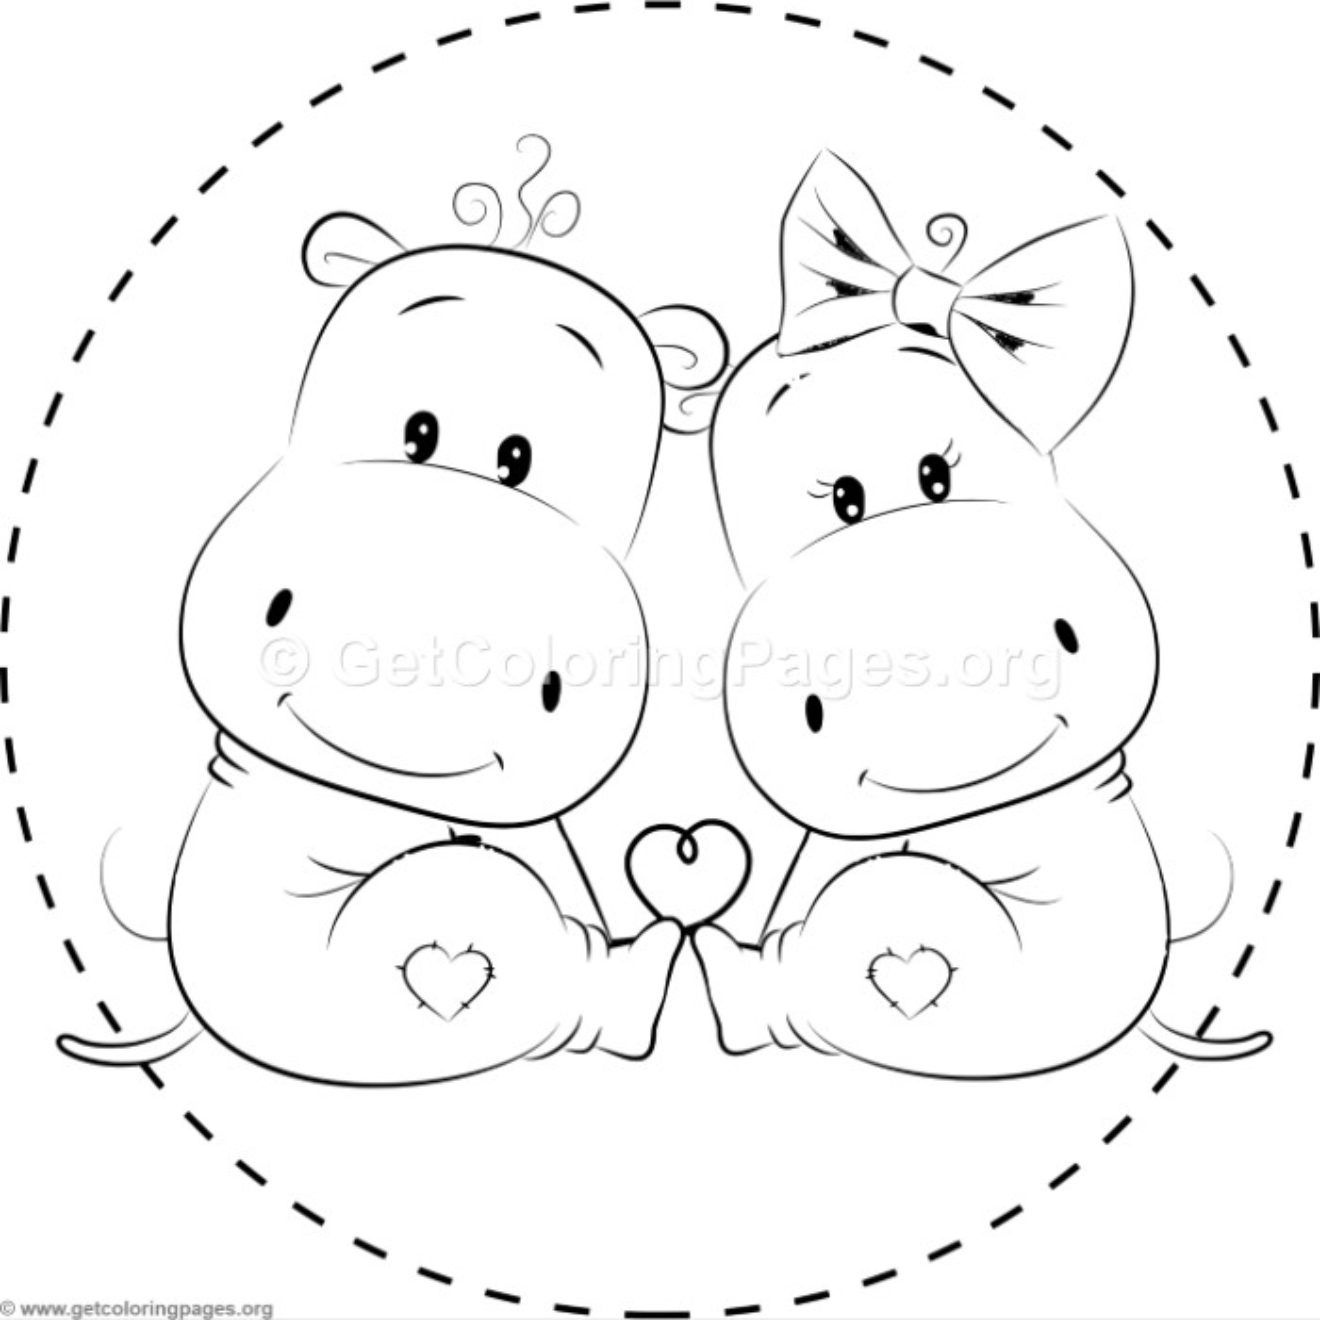 Cute Hippo Coloring Pages Getcoloringpages Org Cute Coloring Pages Cute Hippo Coloring Pages